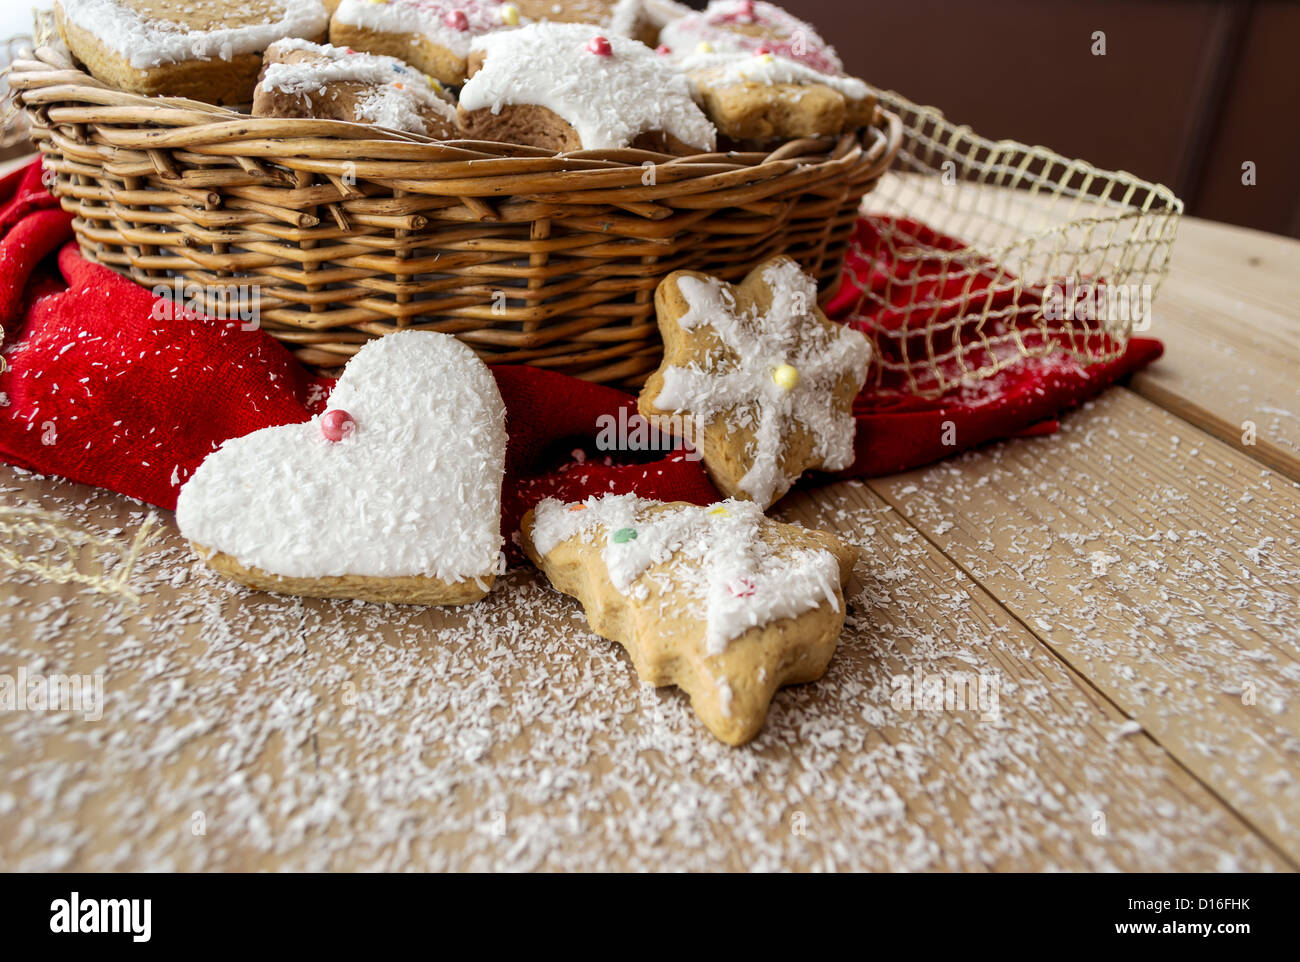 #B9121D Homemade Christmas Cookies With Decoration On Wooden Table  6431 décoration noel home made 1300x962 px @ aertt.com